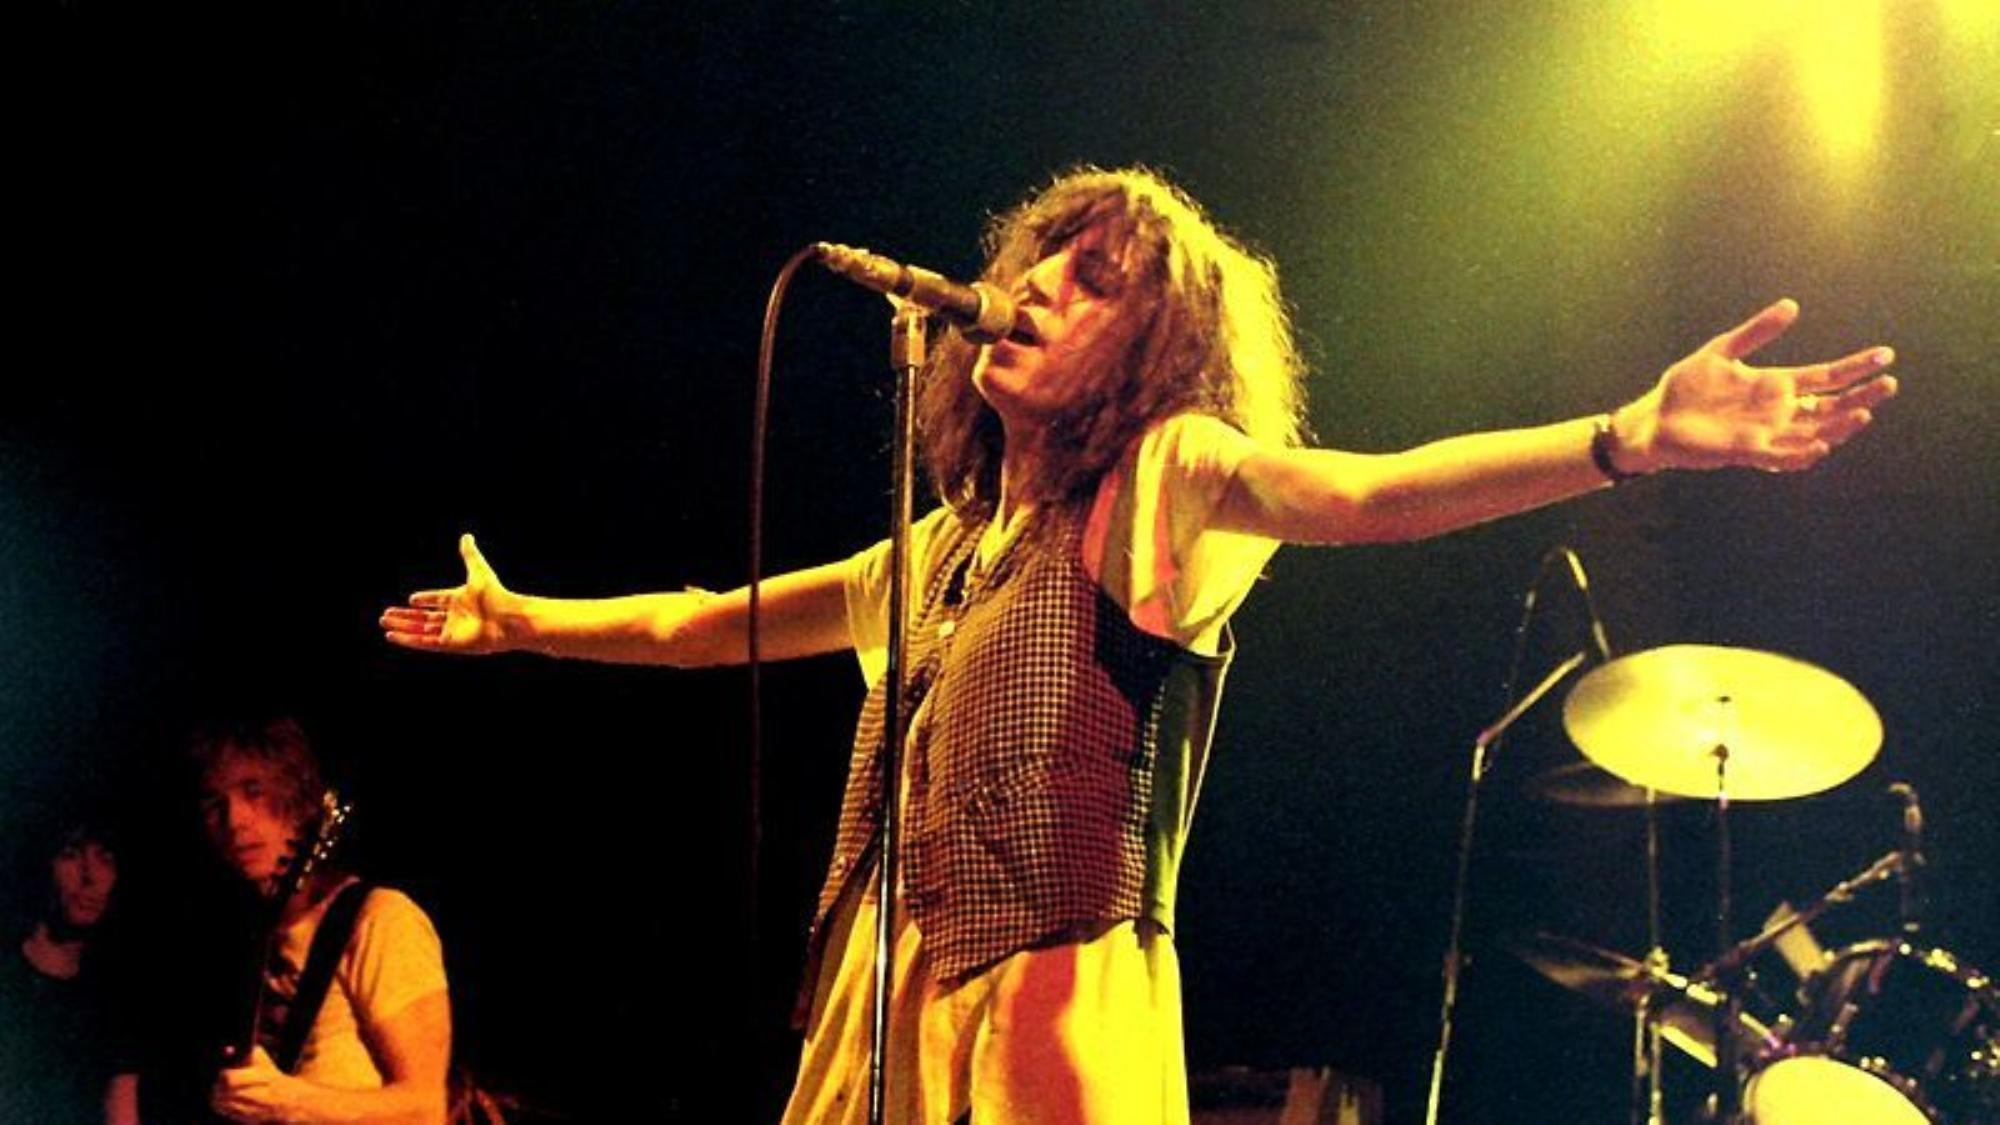 patti smith wrote a wonderful essay about fumbling her bob dylan